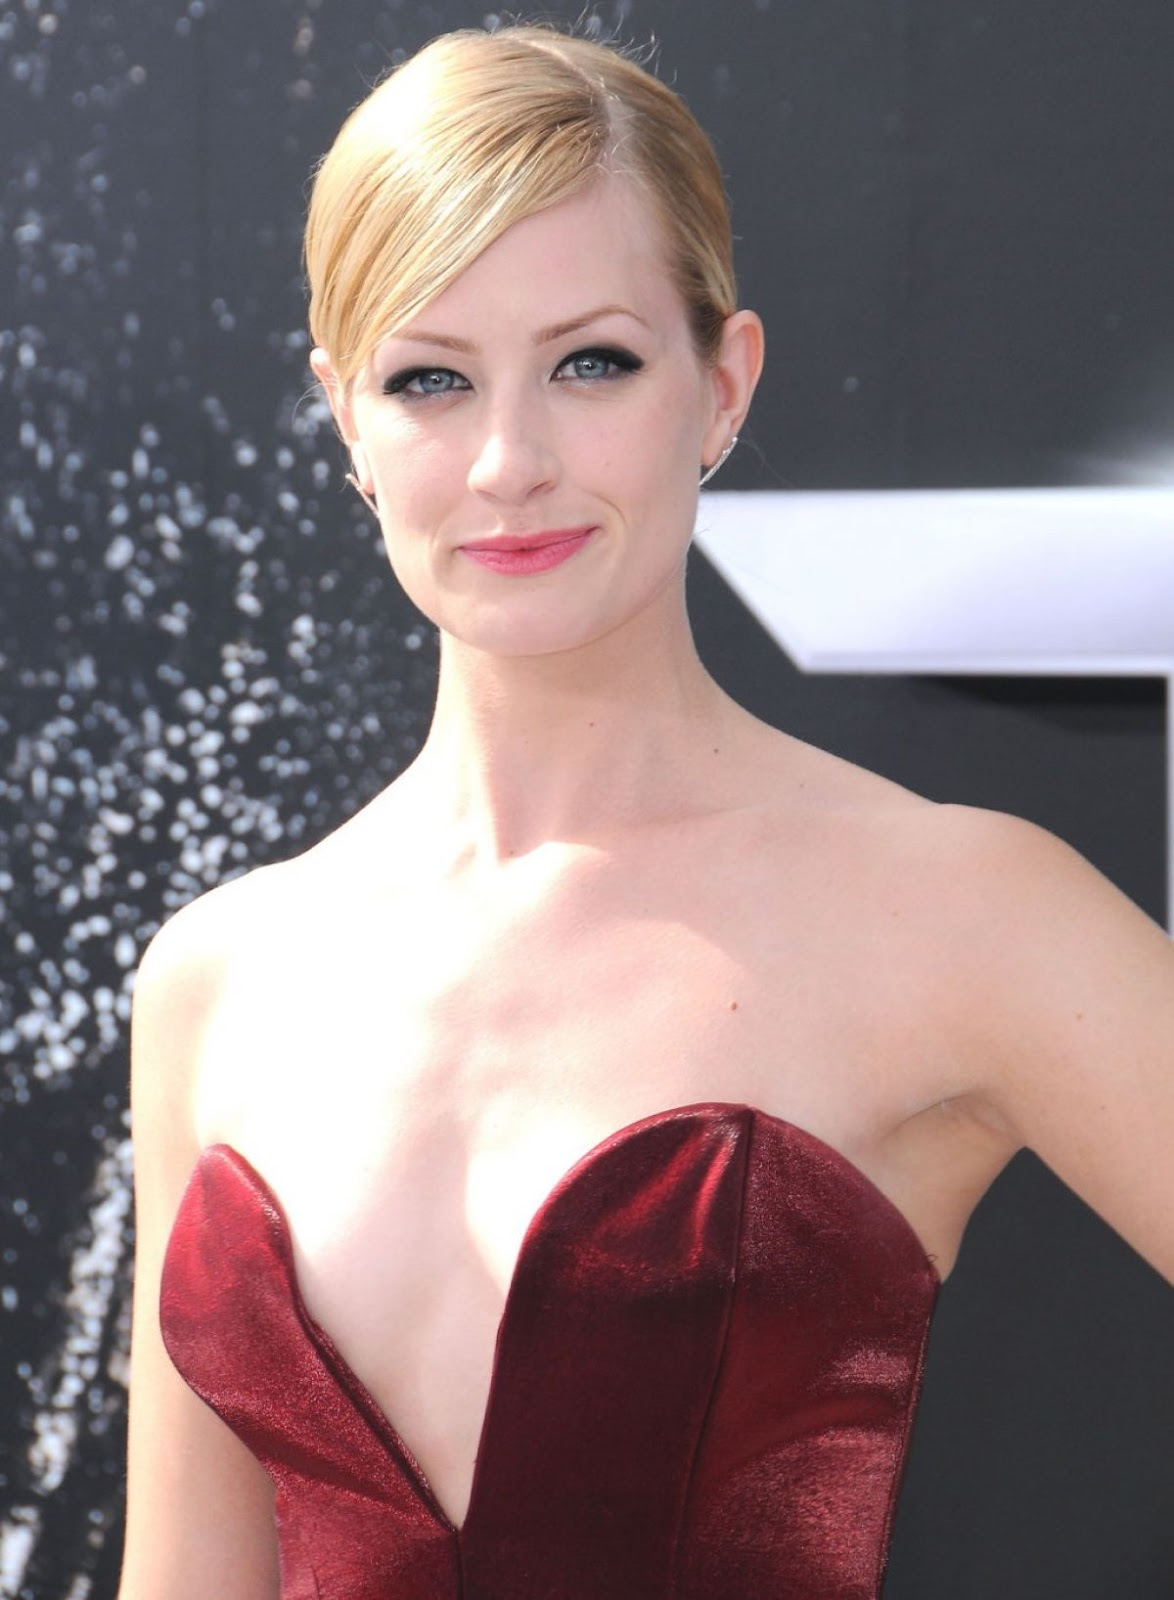 Beth Behrs Hot Photos - Barnorama-4021